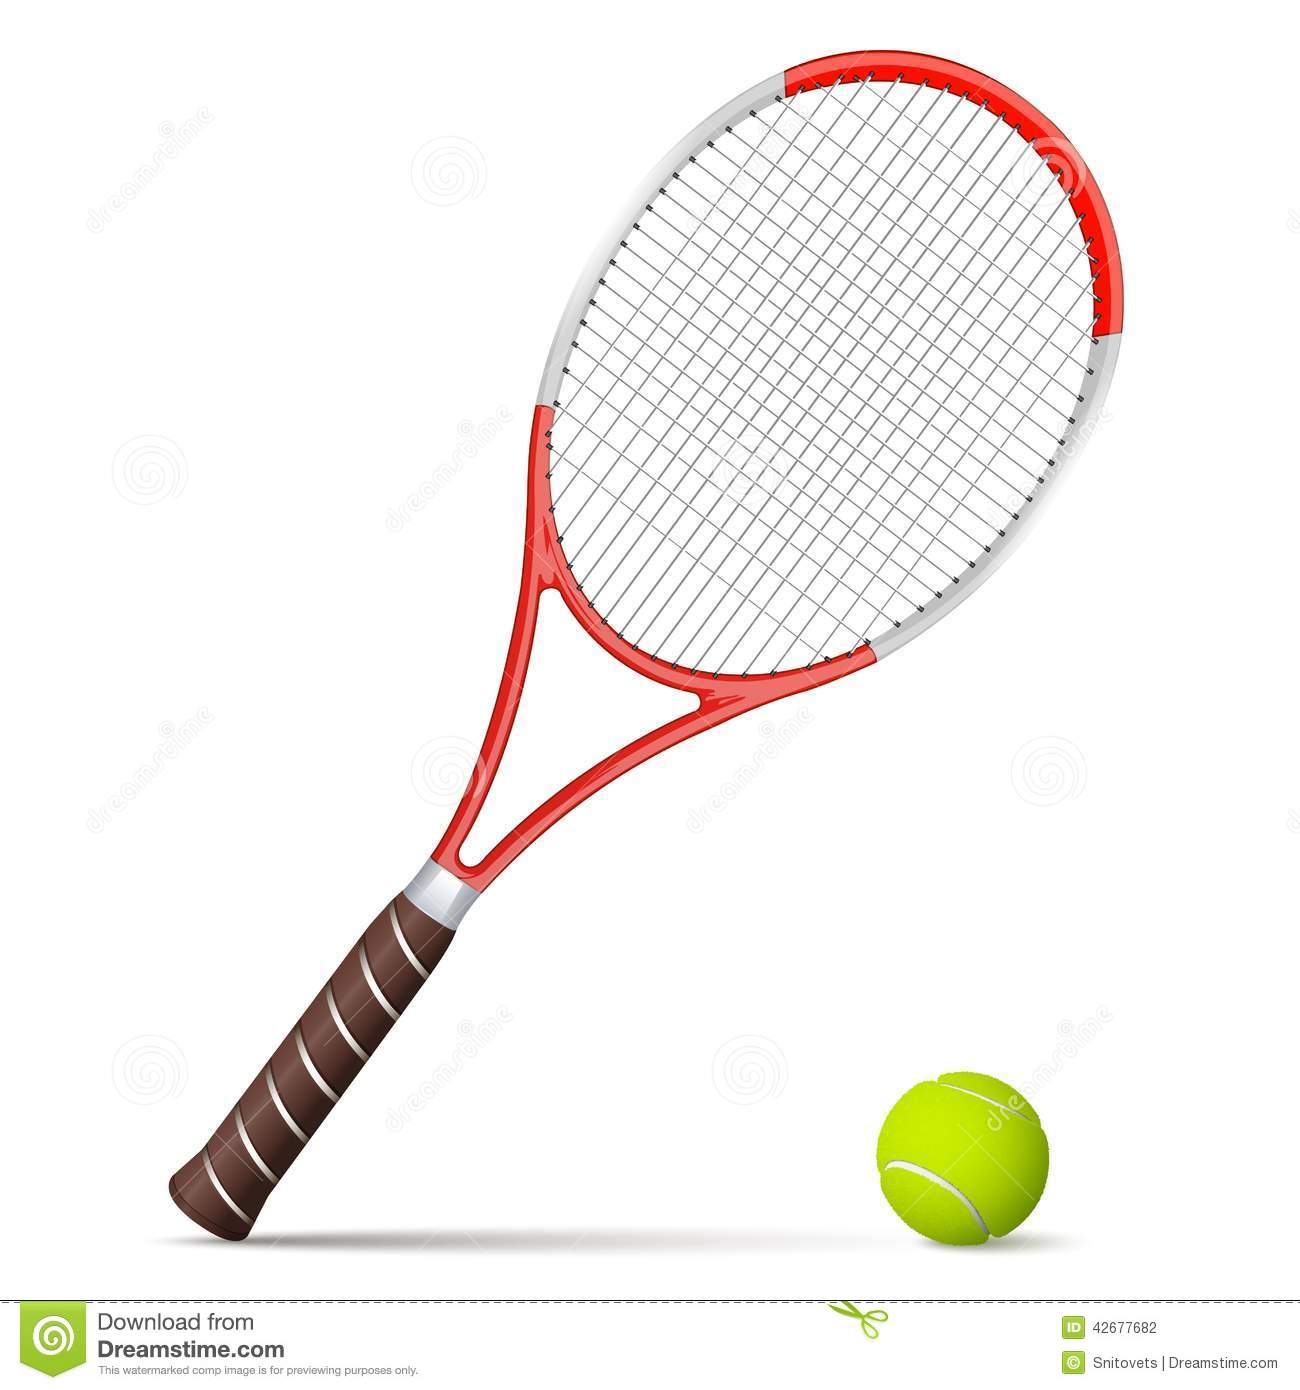 Tennis Racket And Ball On White Background Stock Vector